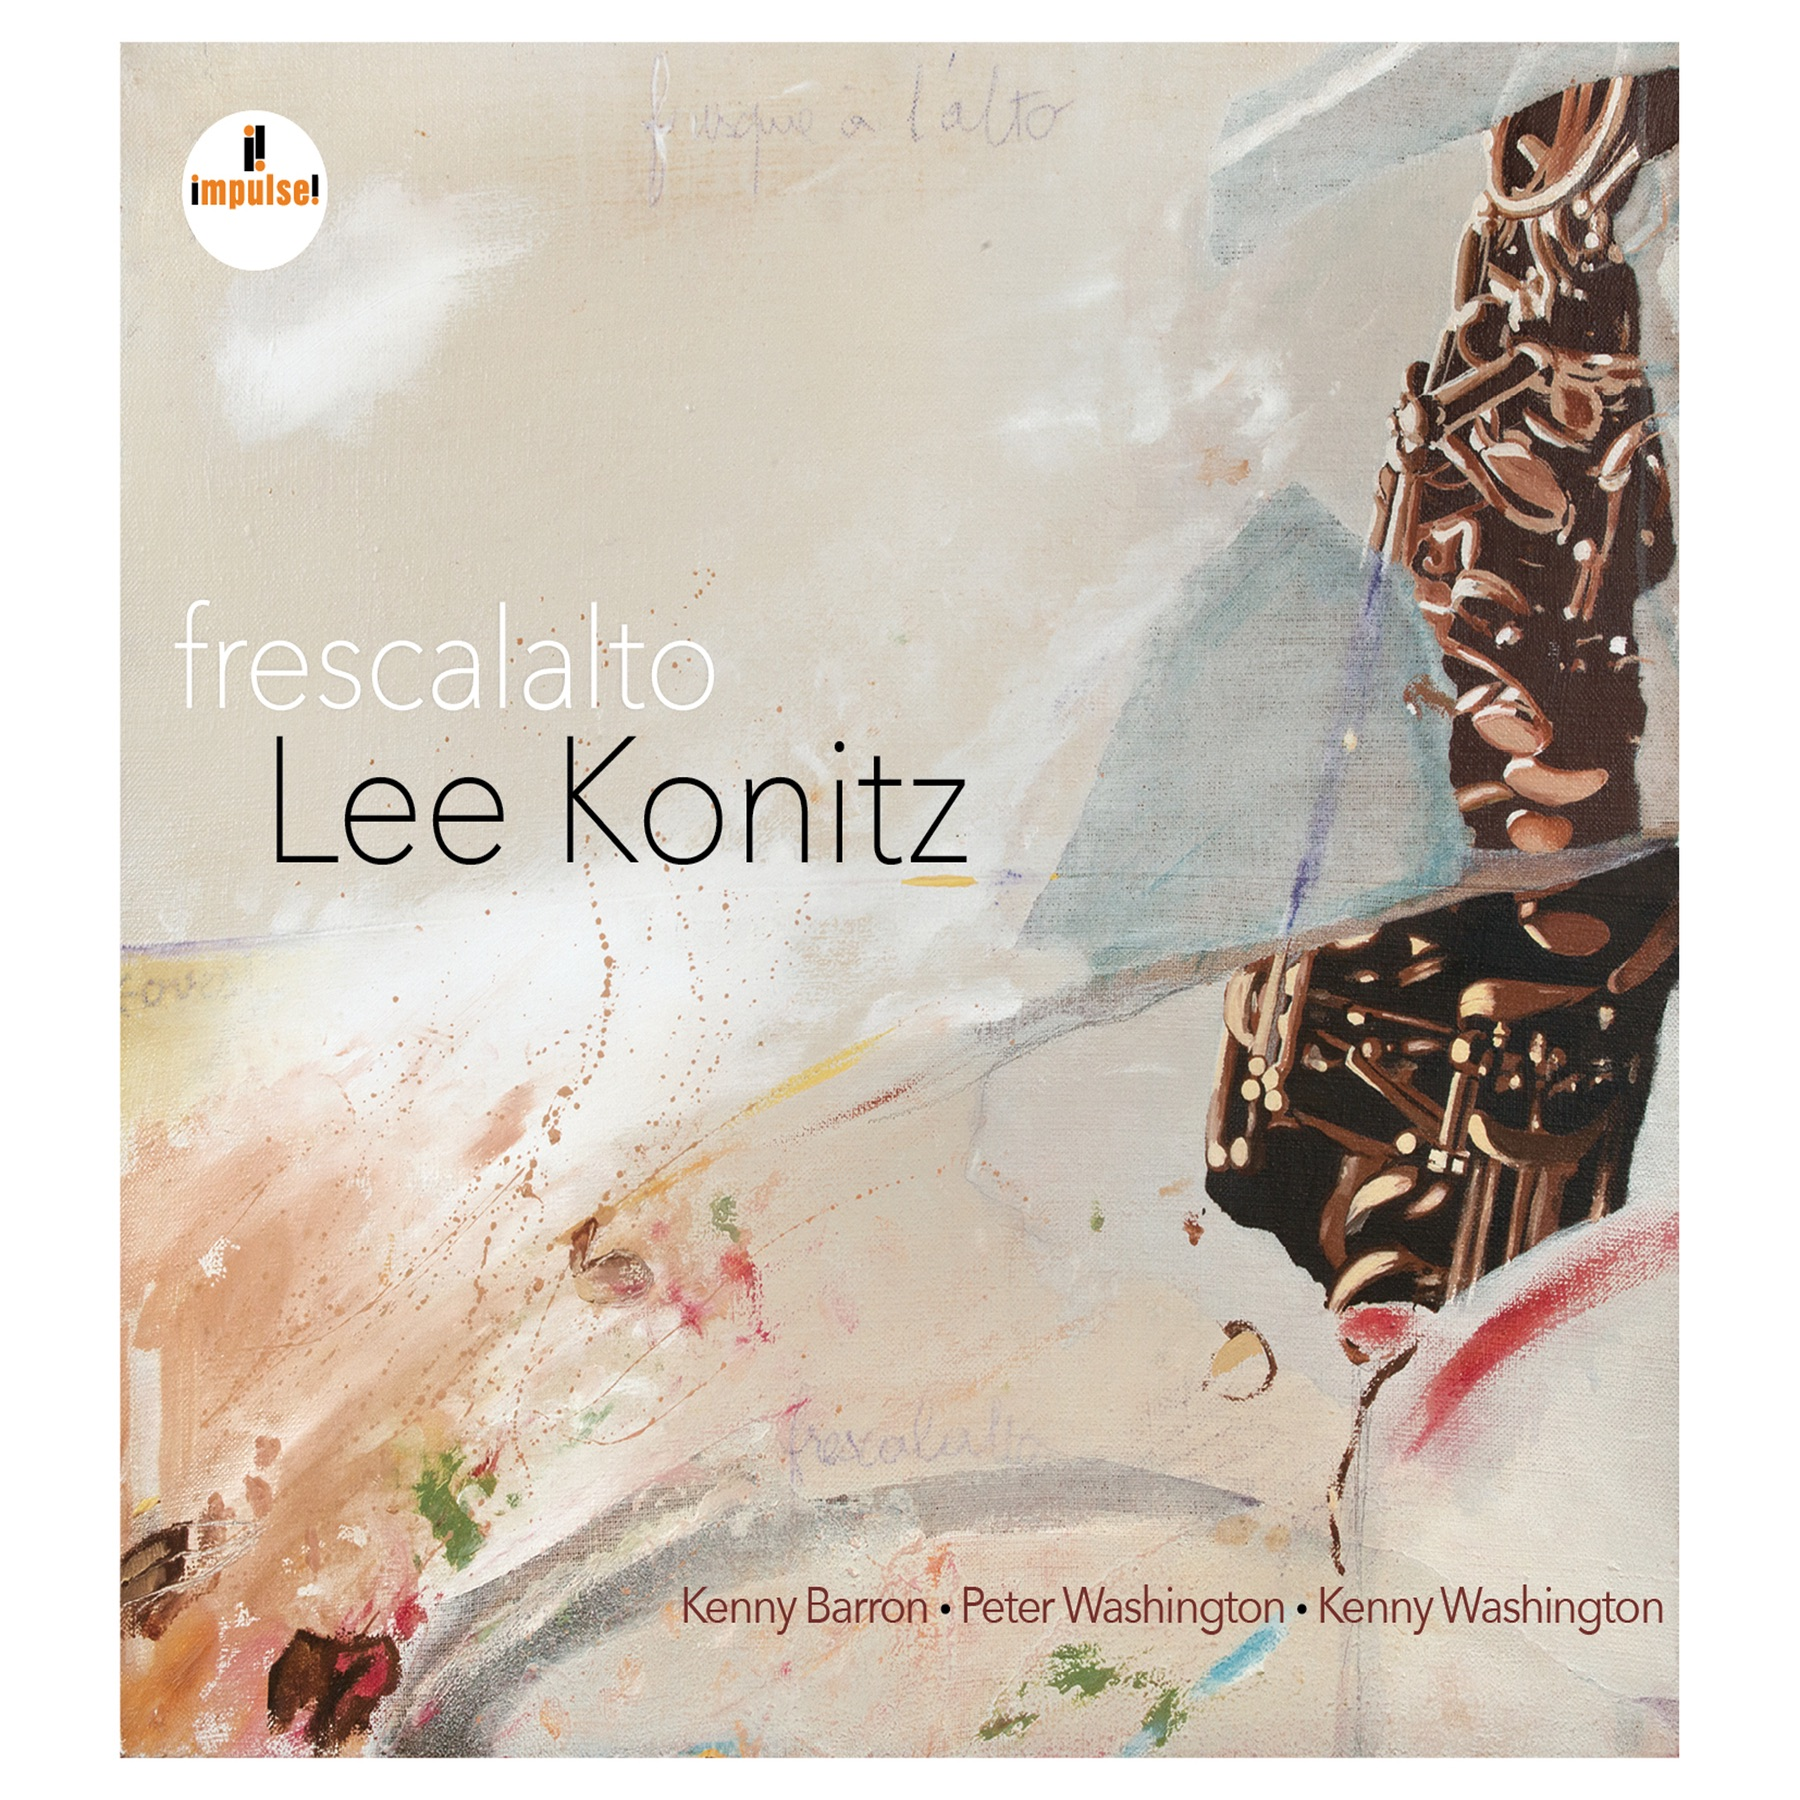 Frescalalto (feat. Kenny Barron, Peter Washington & Kenny Washington)